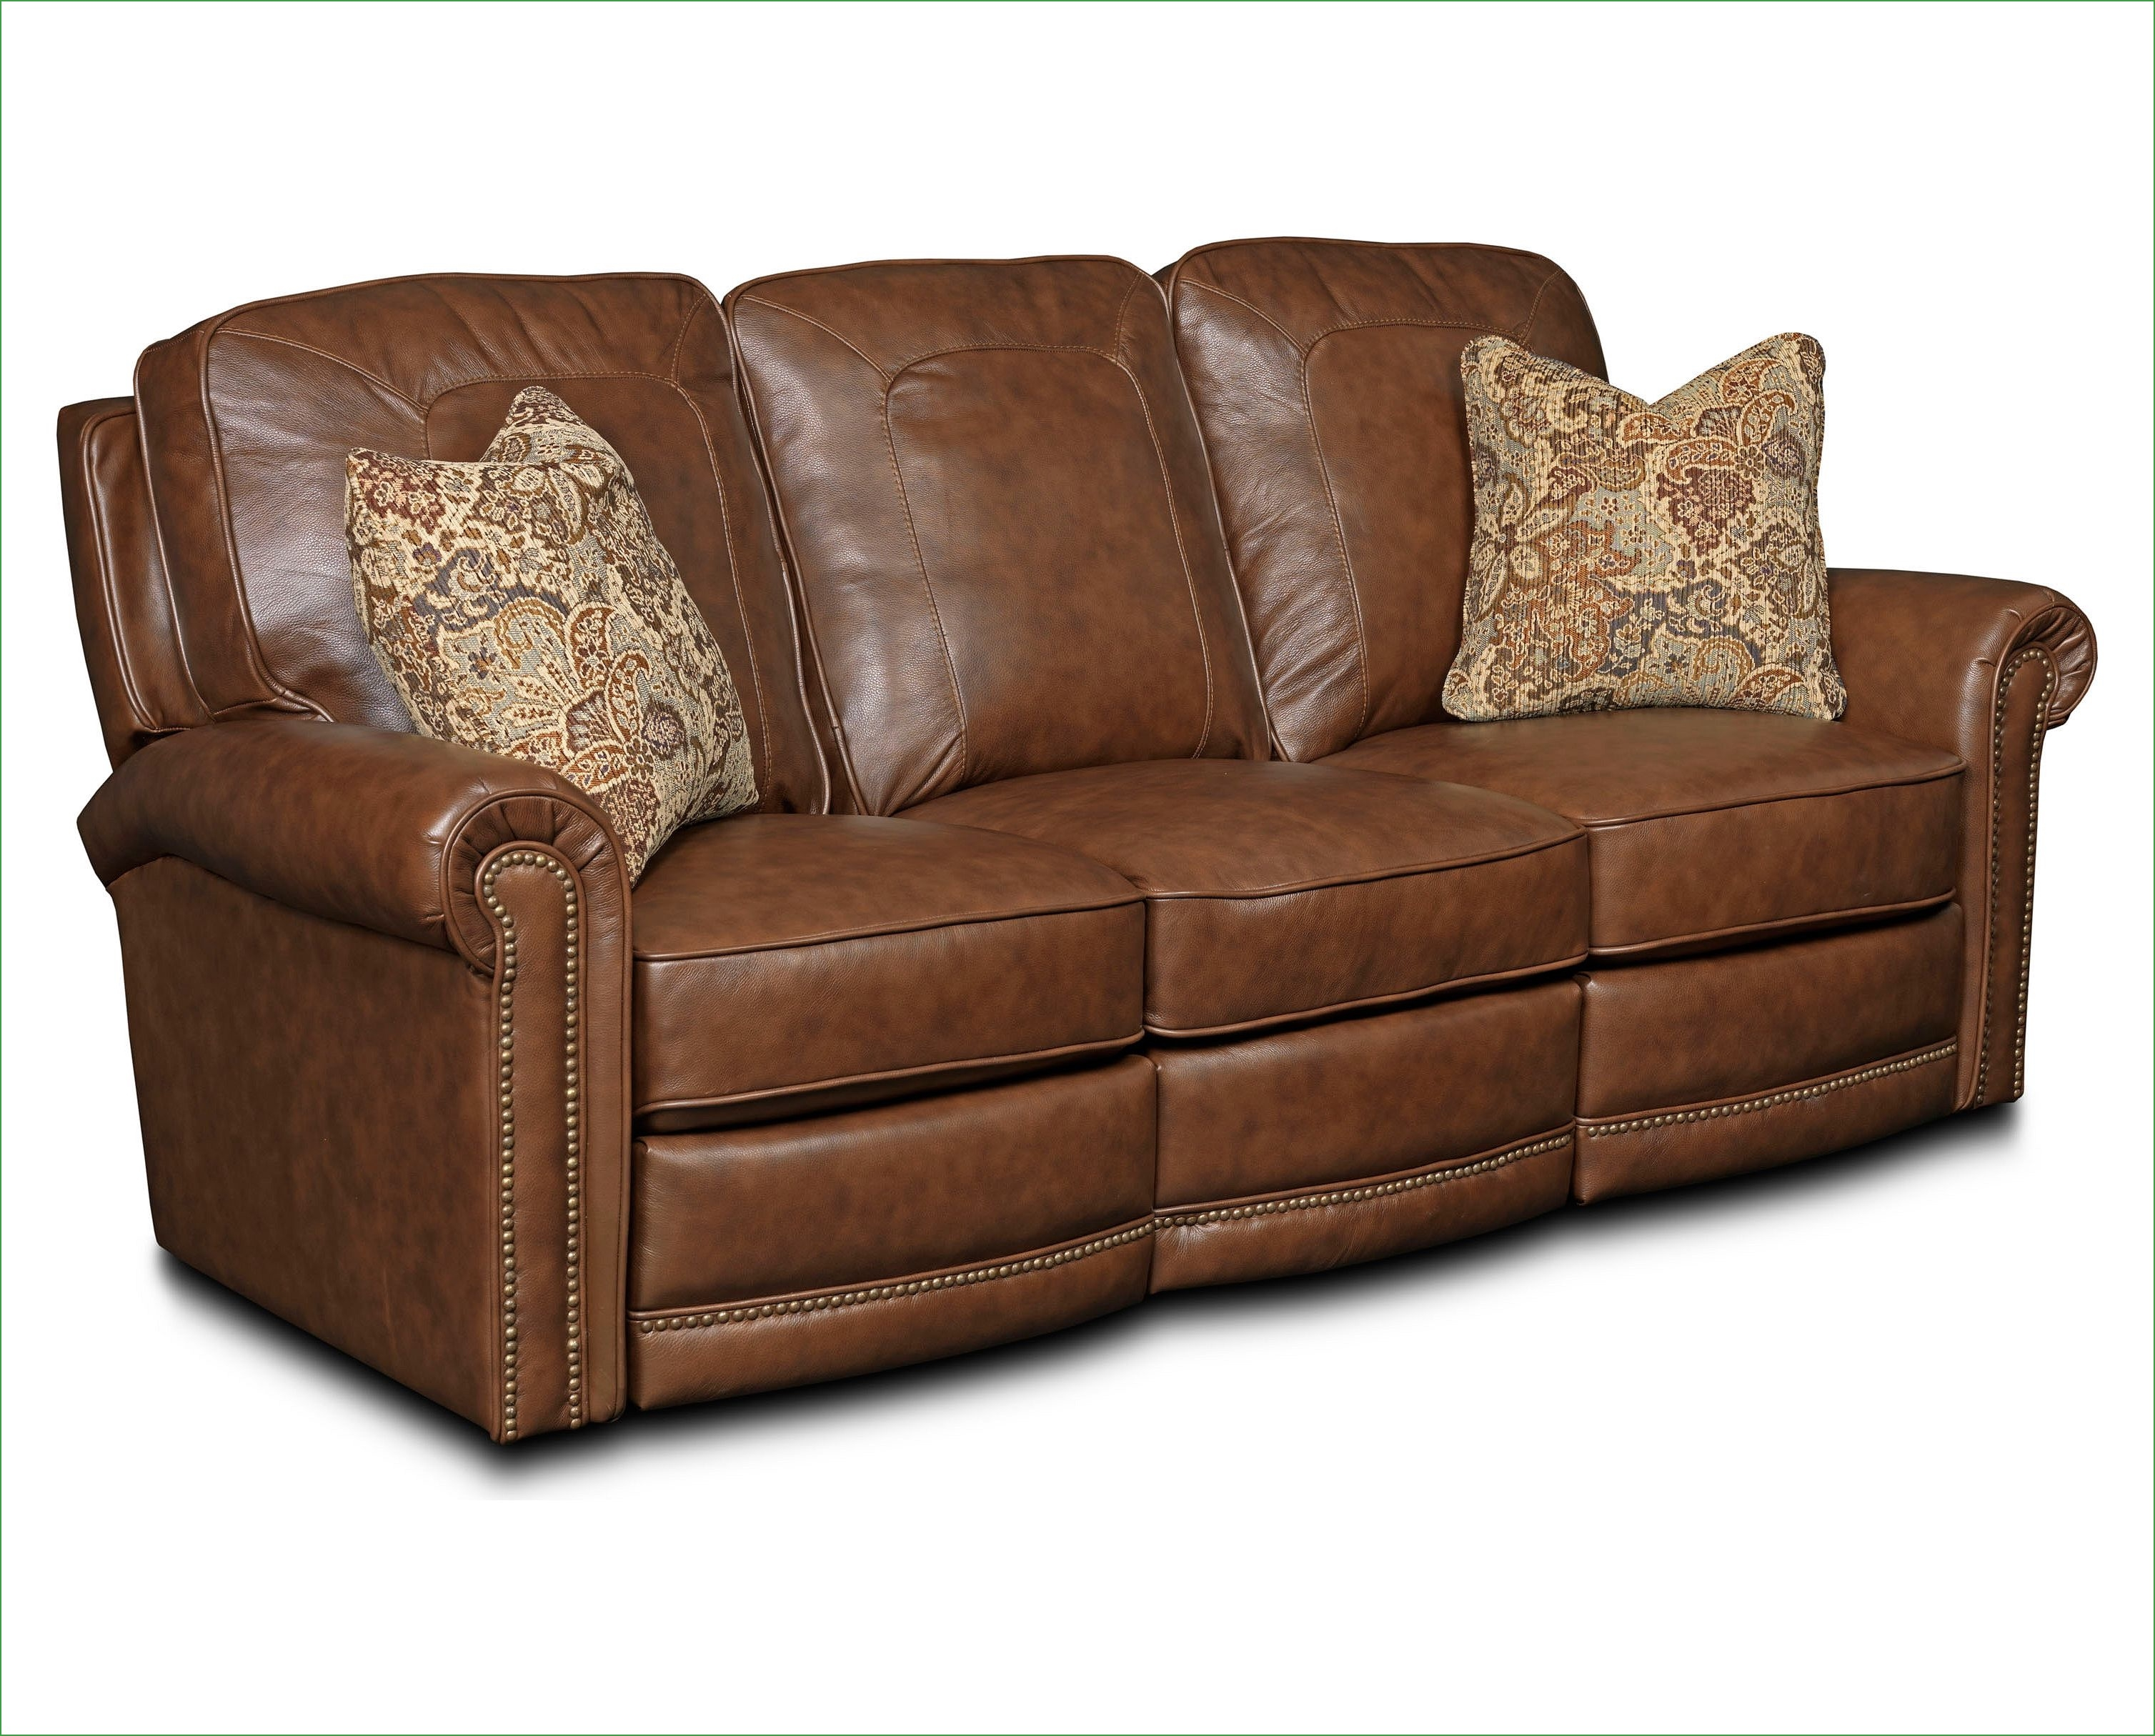 bentley leather sofa reviews chair and ottoman set sectional viewing photos of